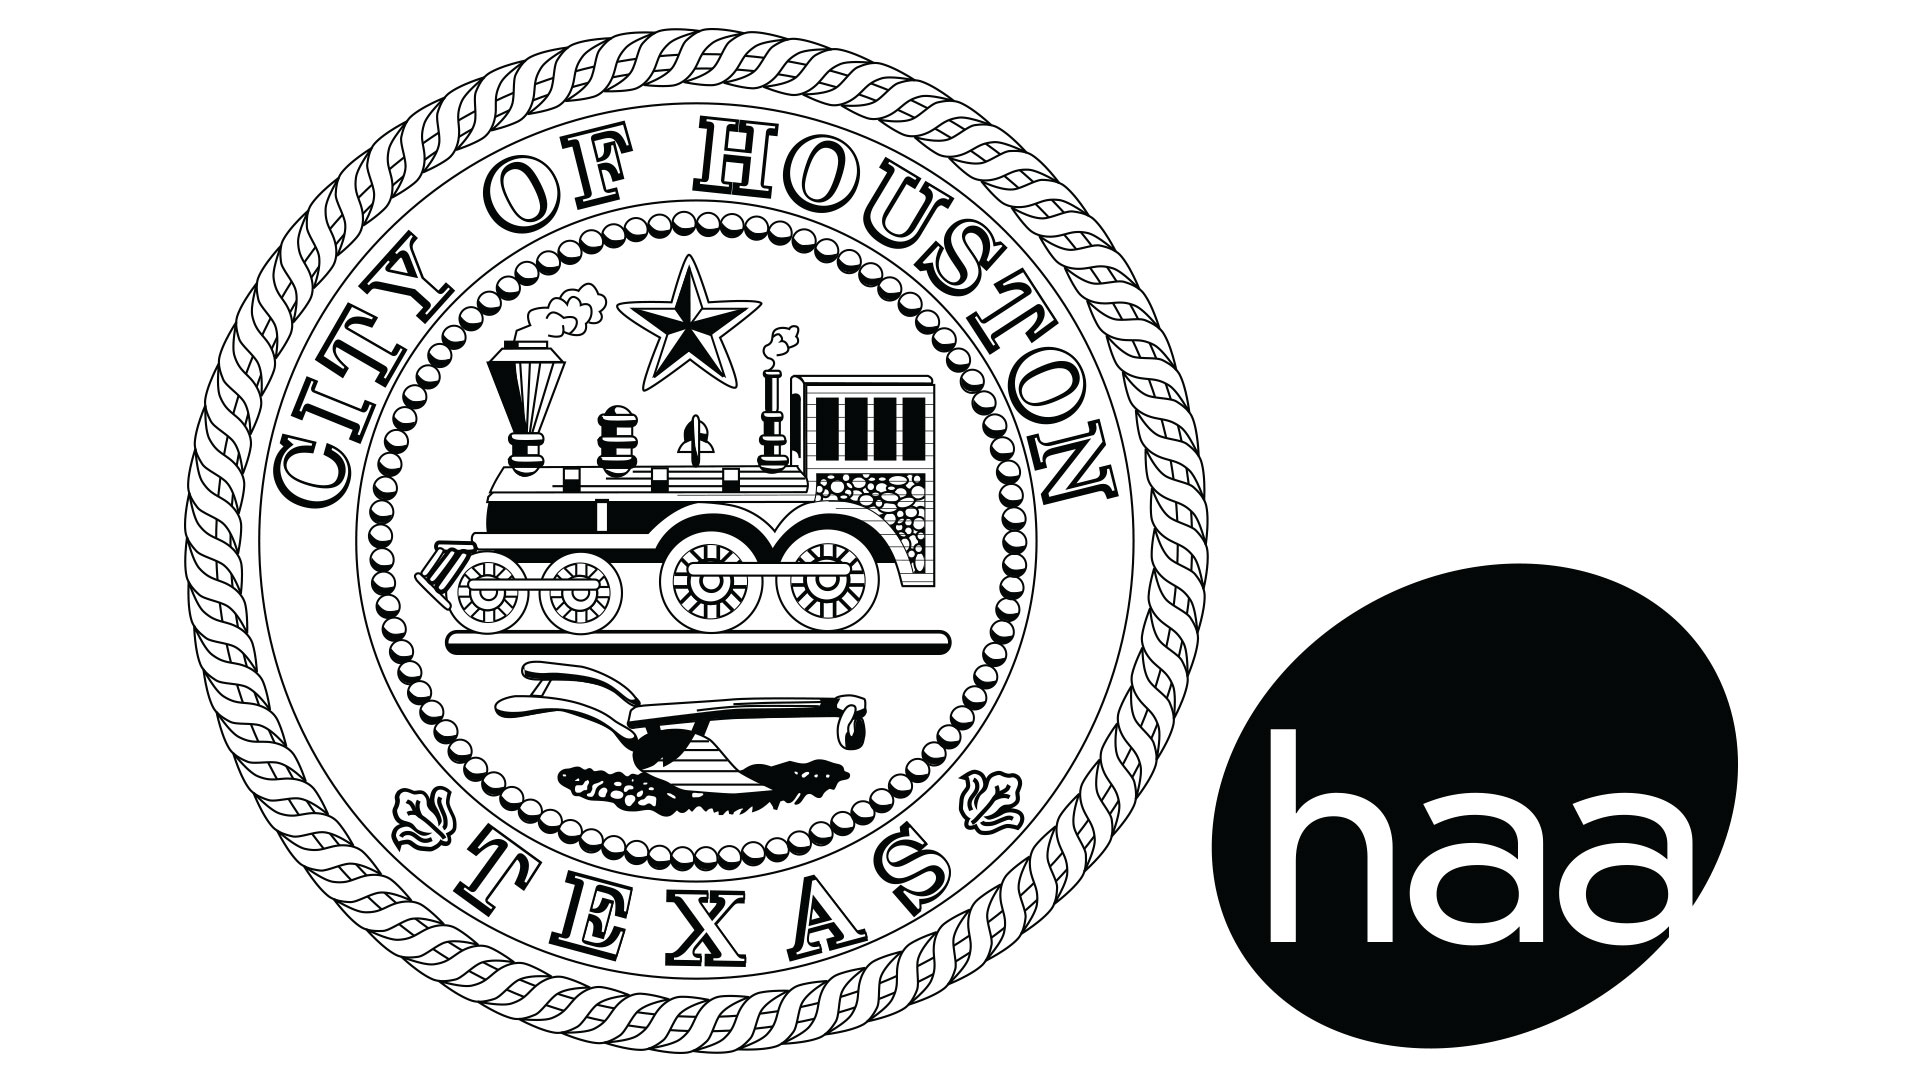 HAA - City of Houston_logo_1920x1080